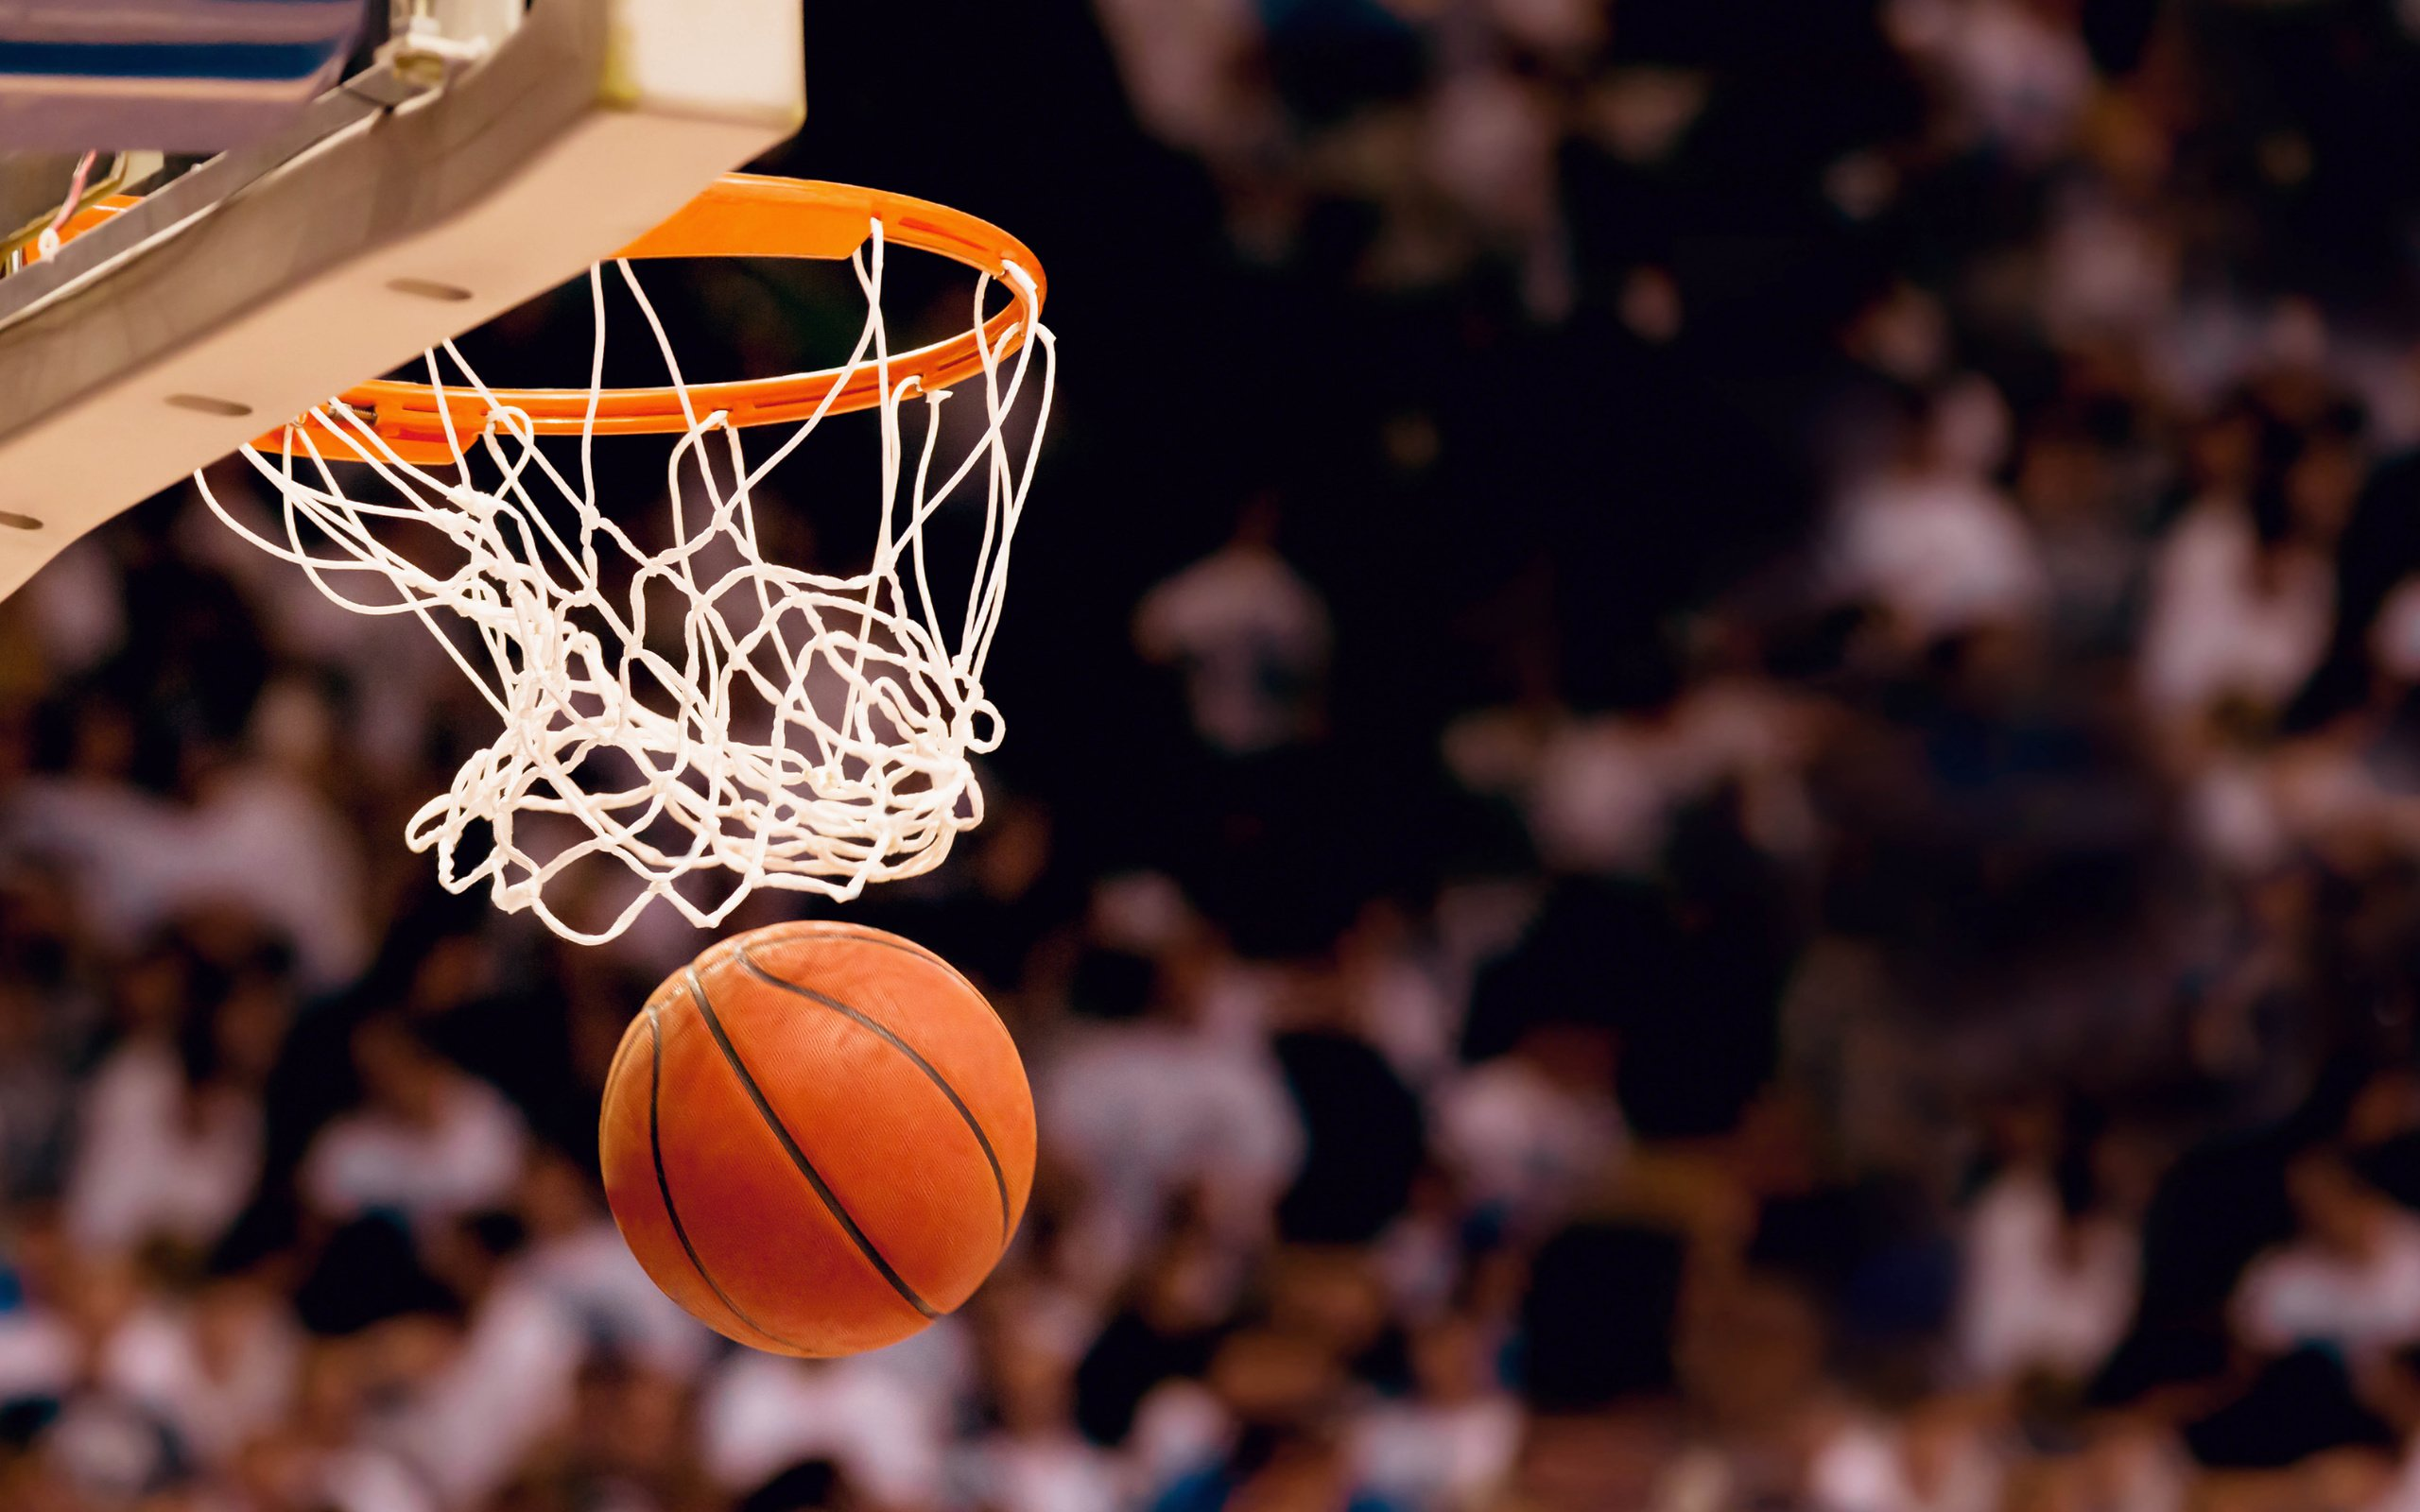 thesis in learning basketball This is a game for learning vocabulary words including basketball, basket, court, outside court, team, dribble, guard, shoot fill in dictation check answers basketball basket court.